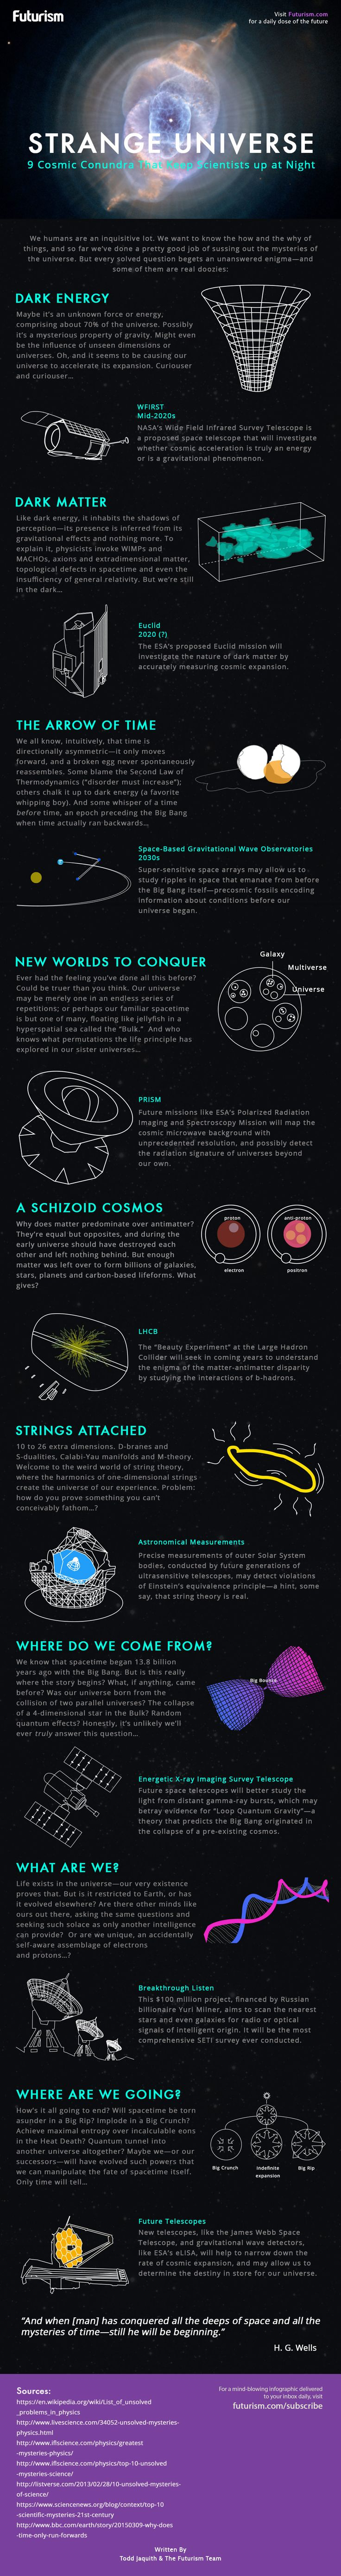 9 Physics Questions Baffling Scientists [INFOGRAPHIC]